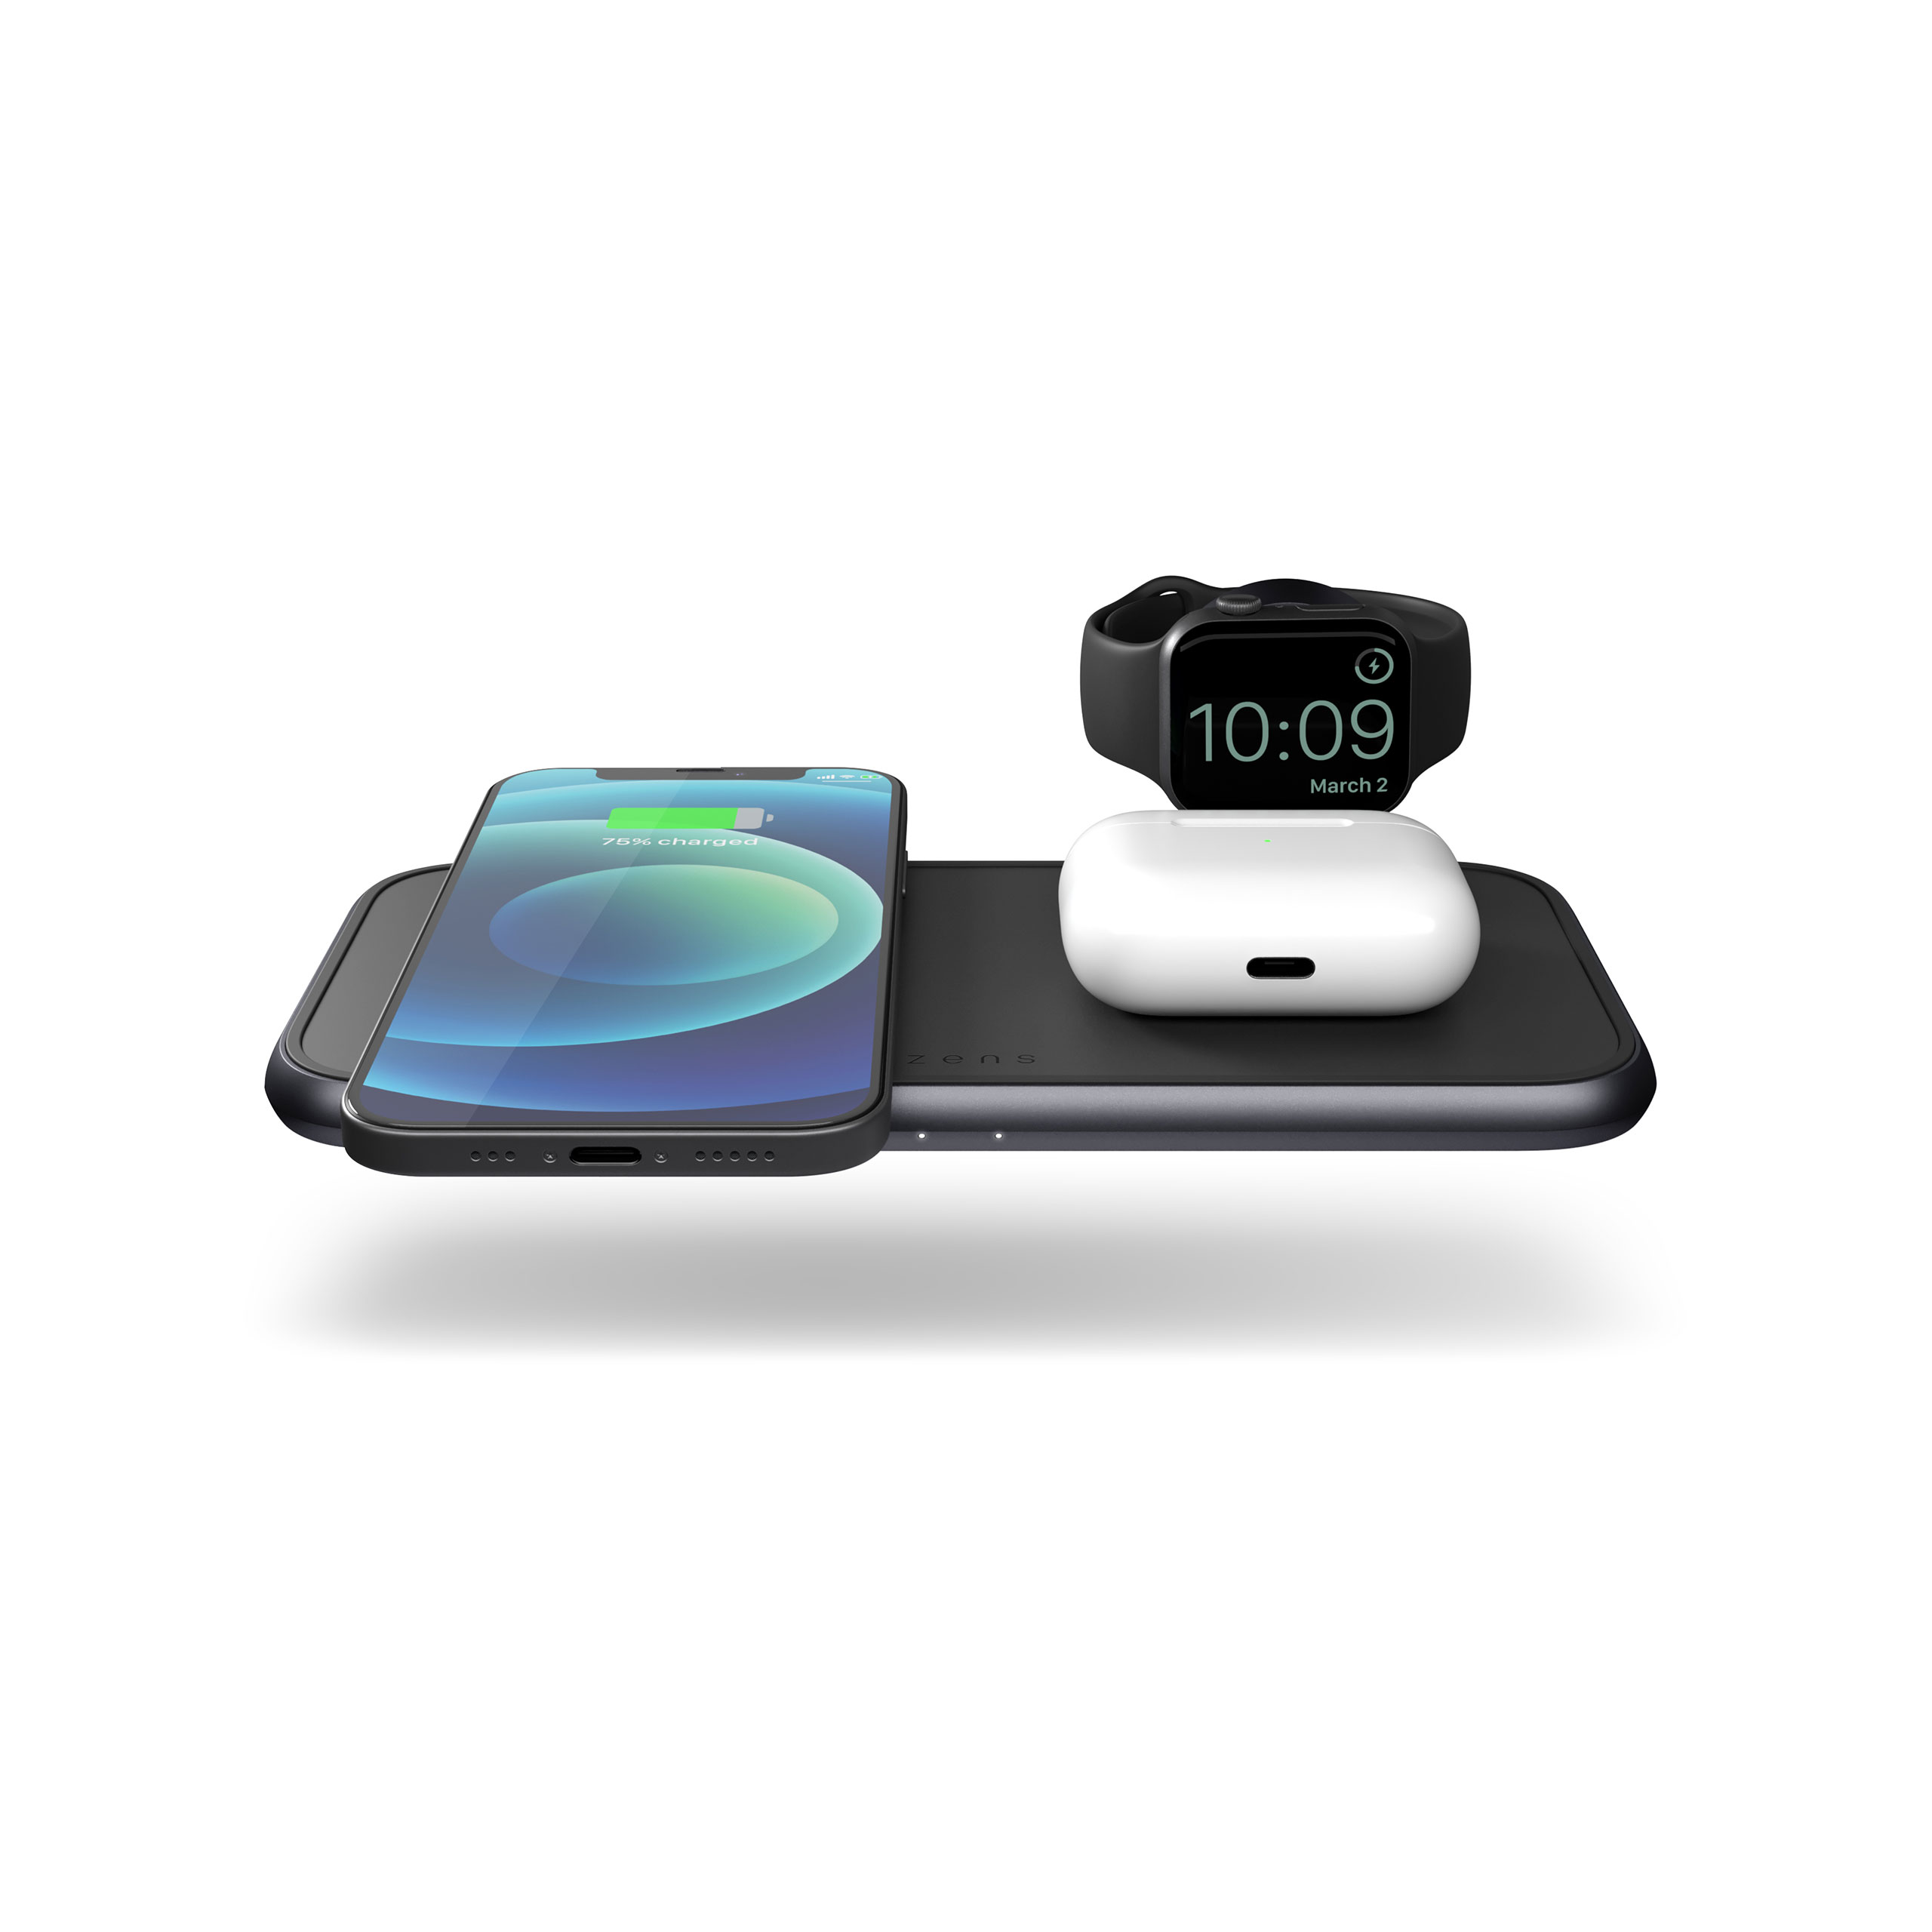 ZEDC14B - Zens 4-in-1 Wireless Charger Front Top View with devices